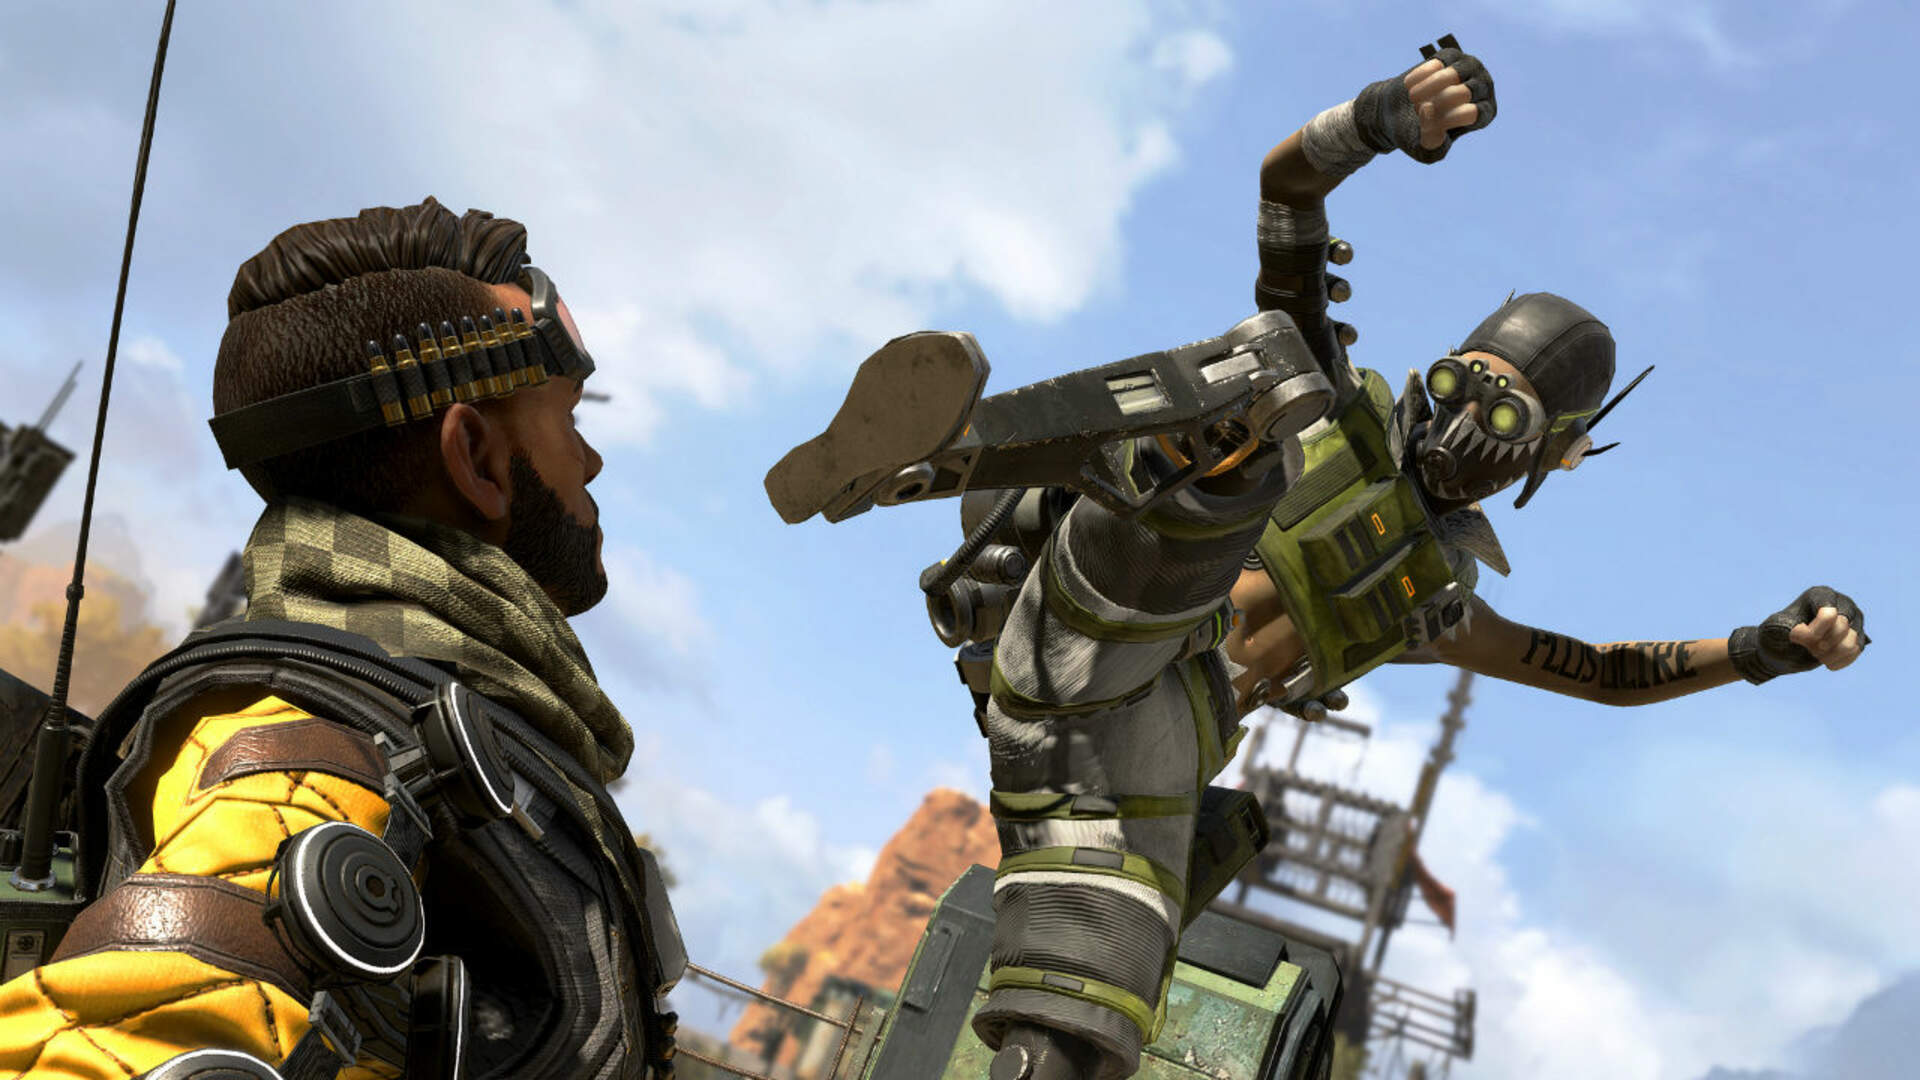 Apex Legends Almost Feels New Again After Its Latest Patch